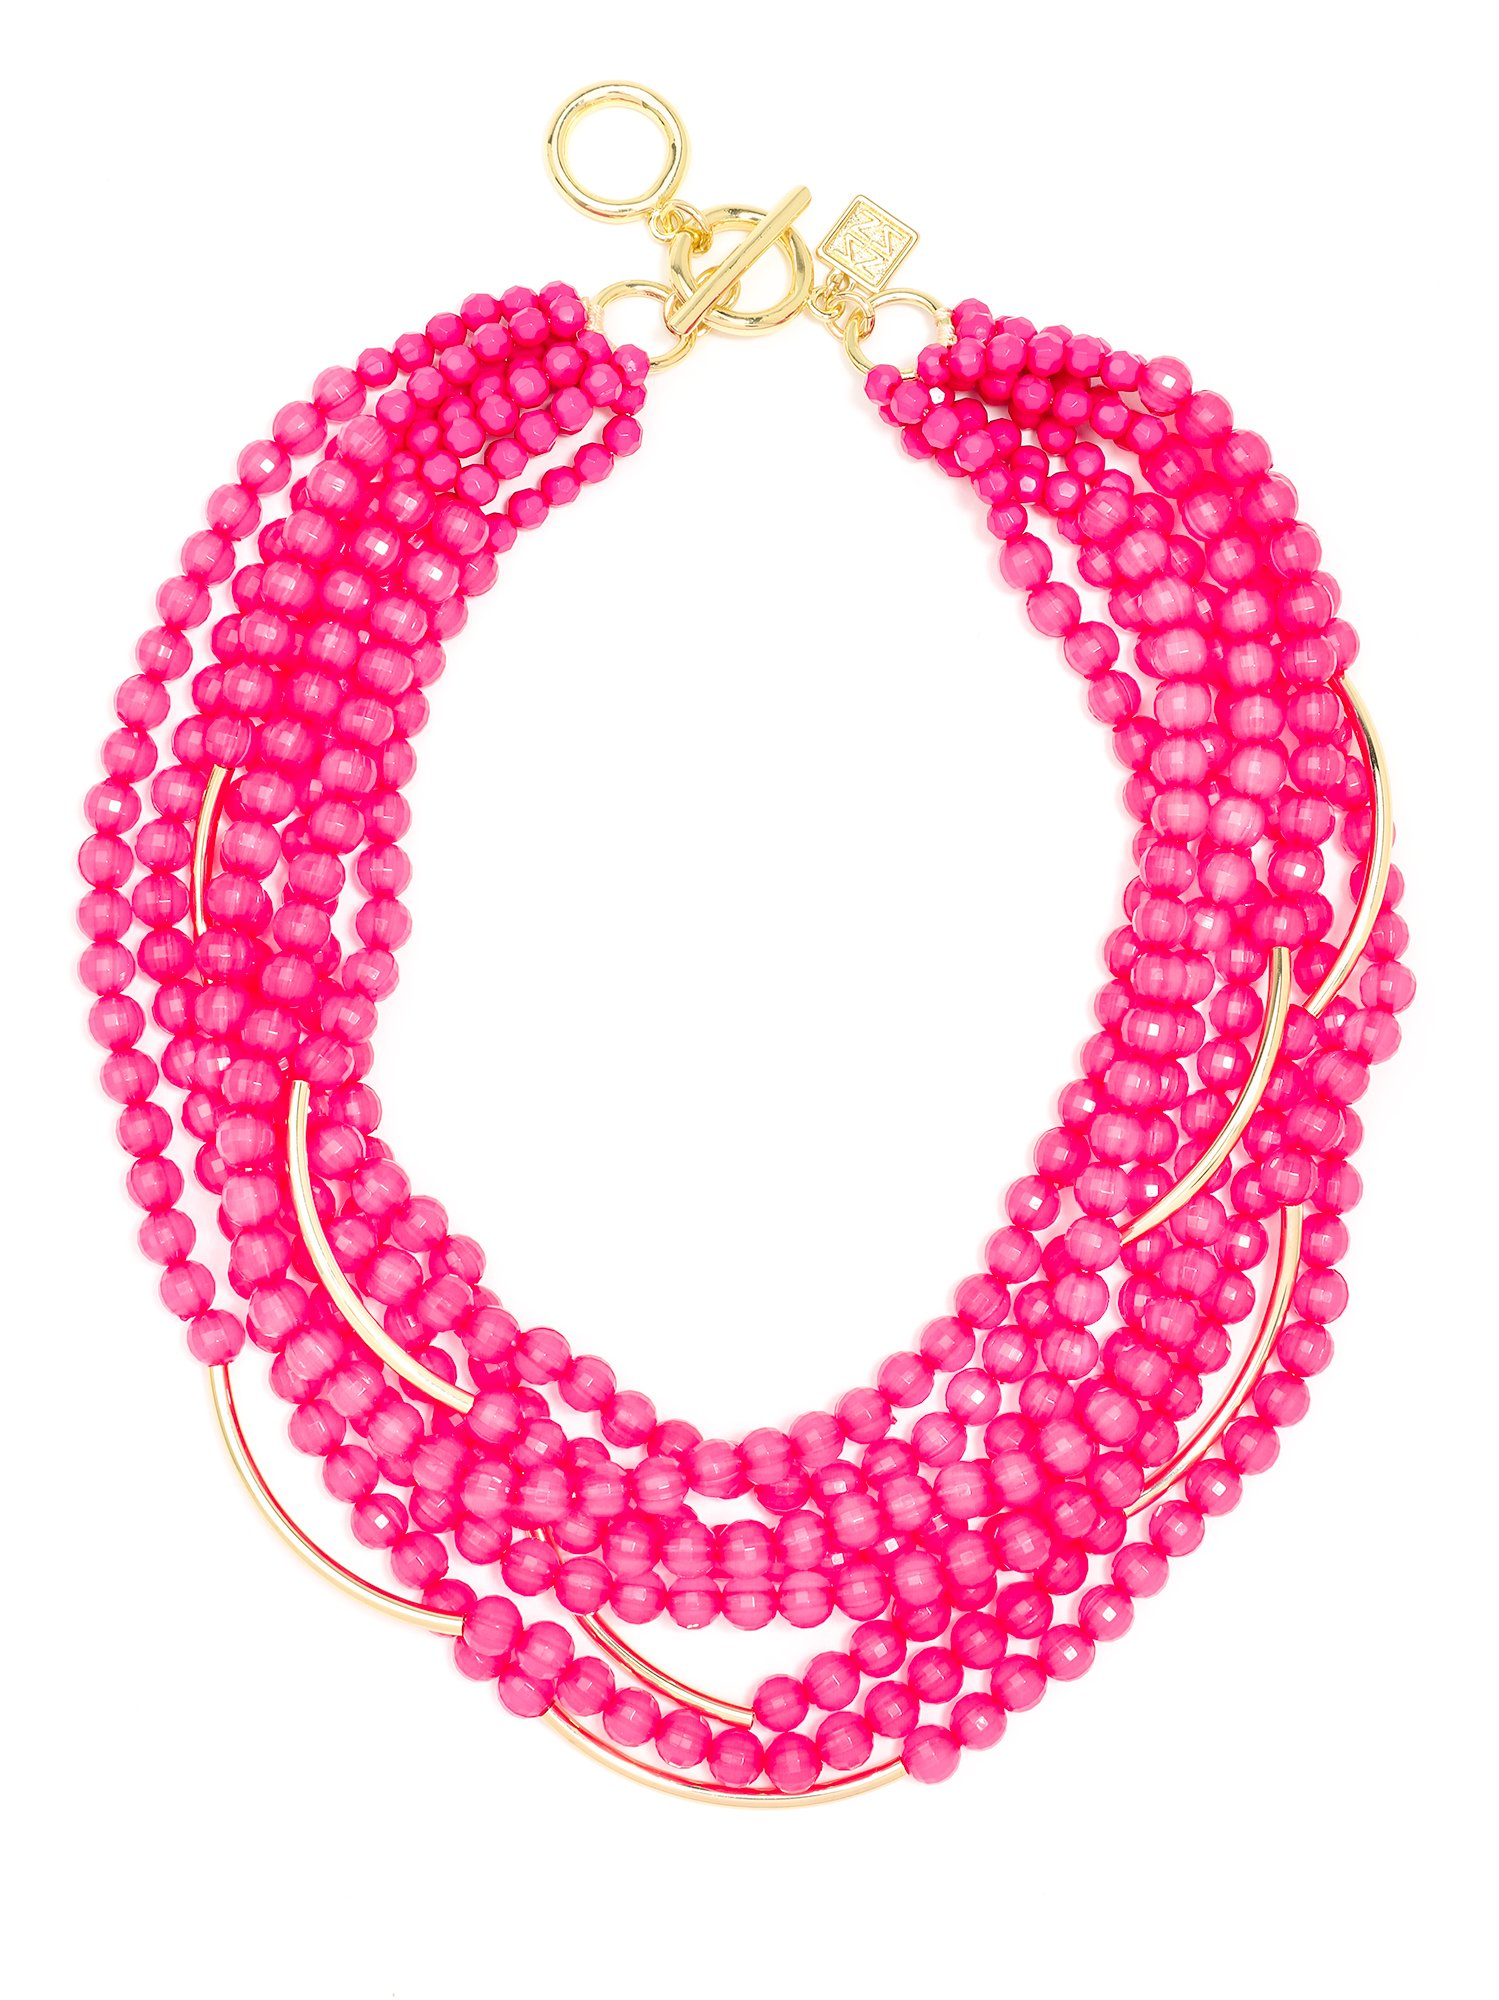 ZENZII Catch The Wave Beaded Necklace (Hot Pink)